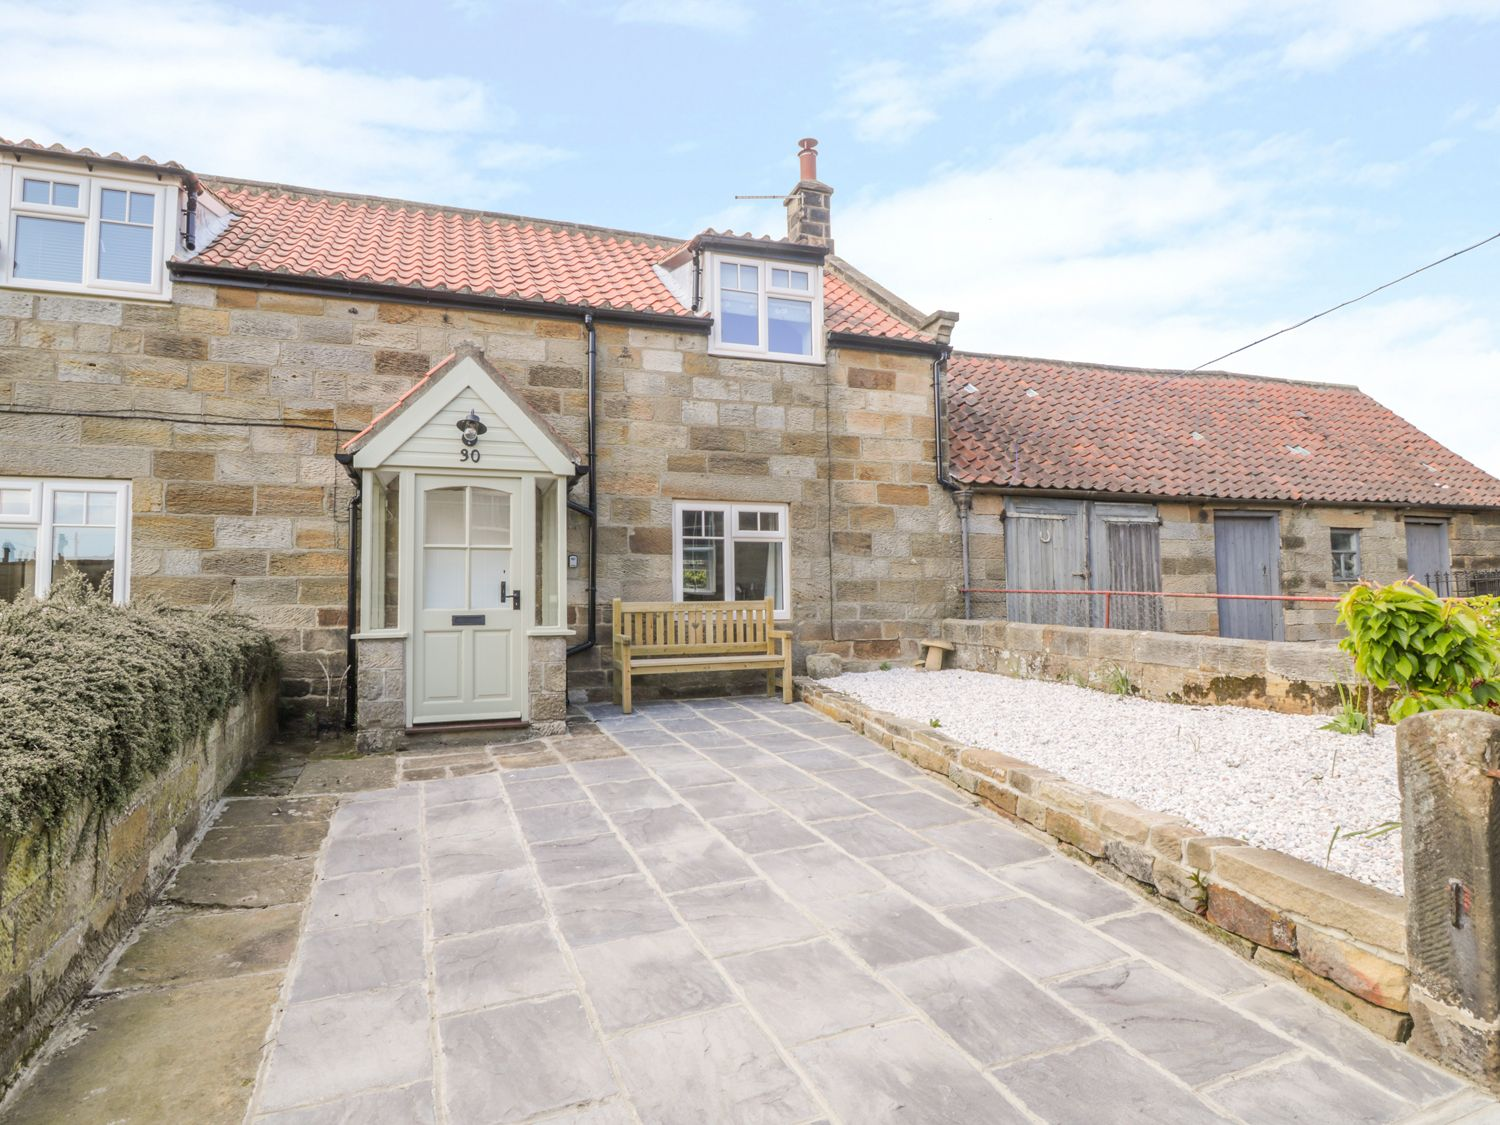 30 Main Road - Whitby & North Yorkshire - 1010750 - photo 1